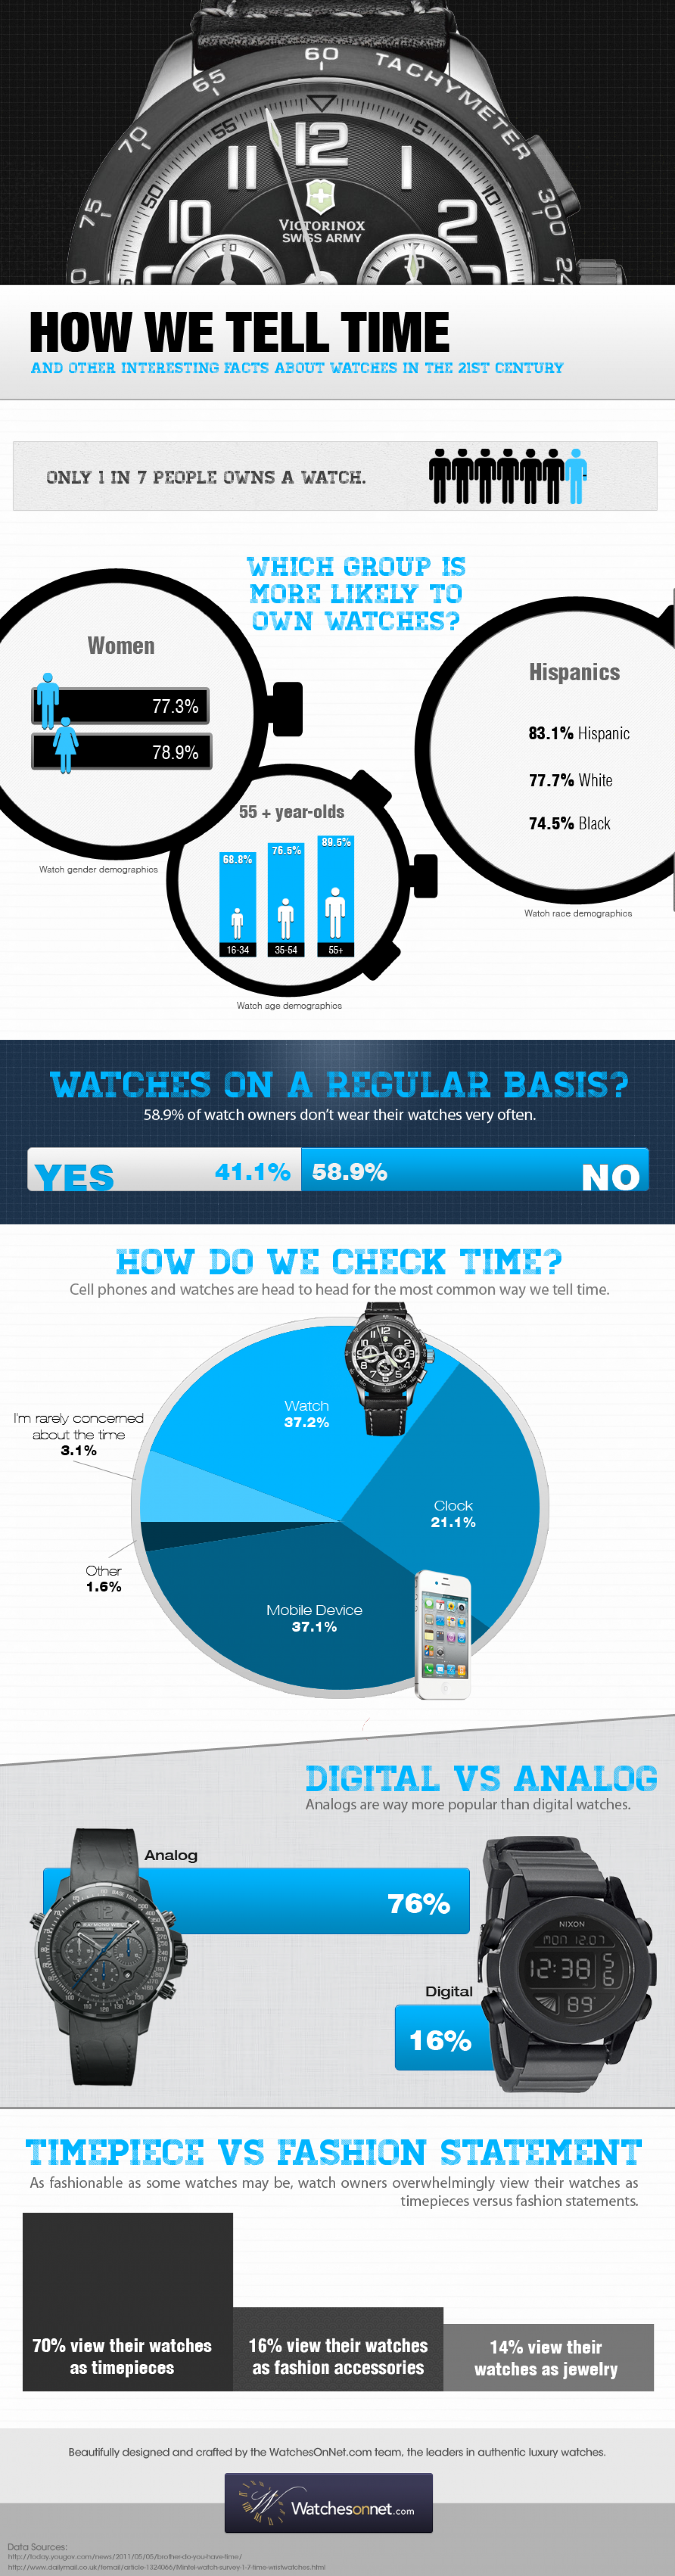 How We Tell Time Infographic